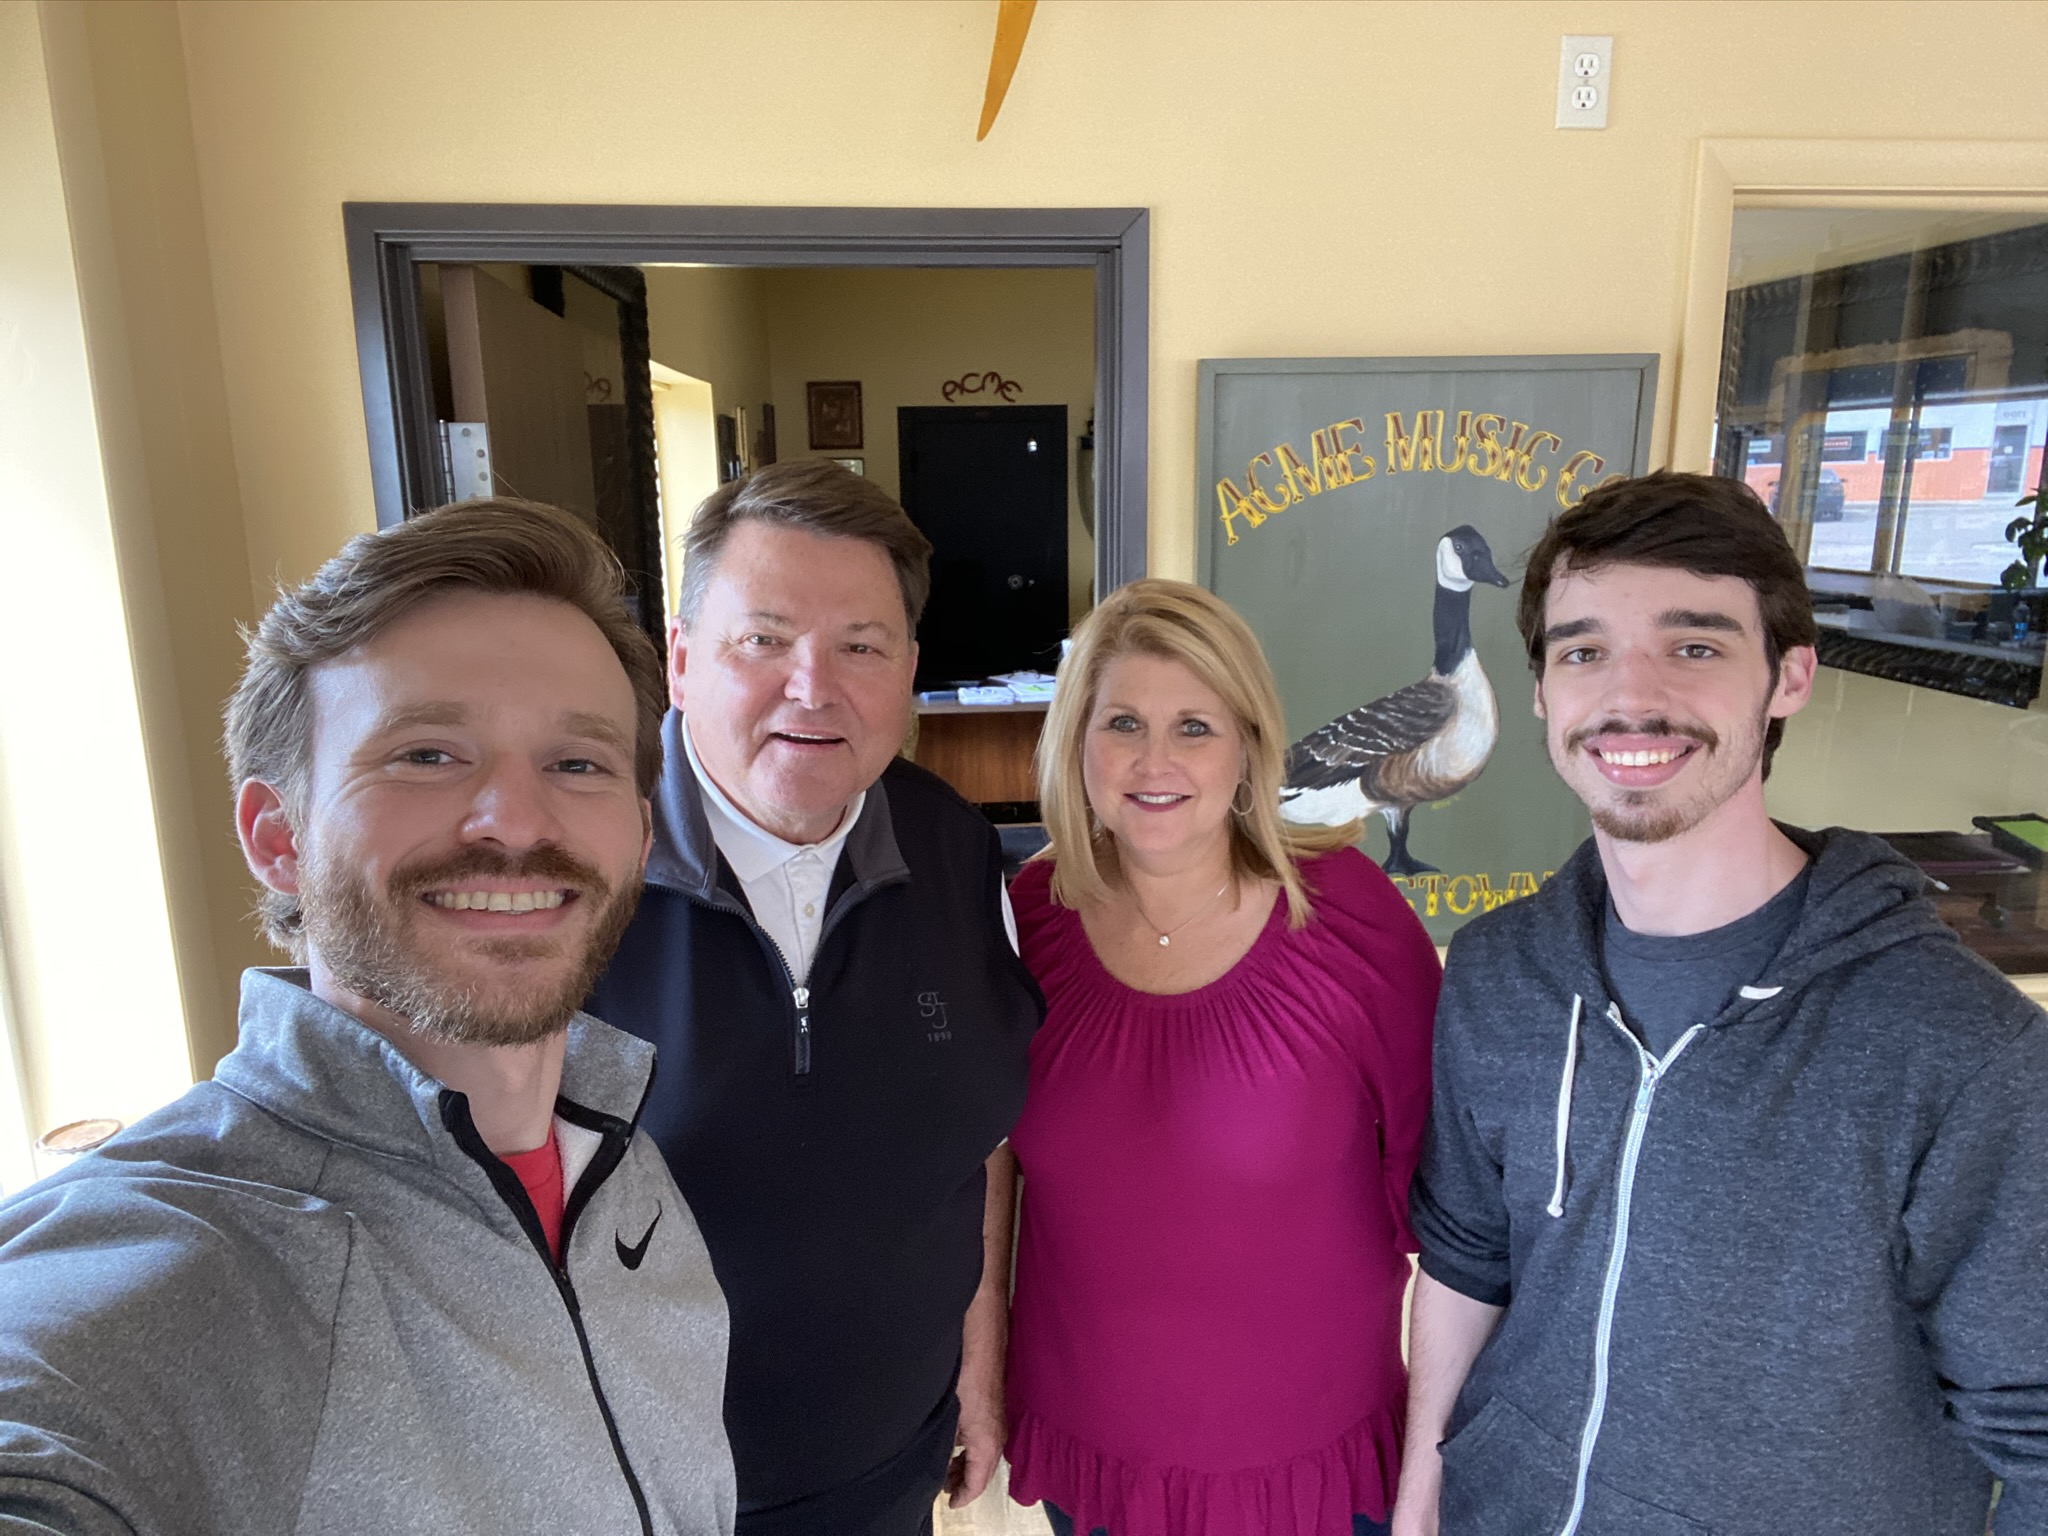 Tom Cobb and Michelle Cobb from Acme Music & Vending with Evan Jarecki and Colton Chastine from Gimme Vending.